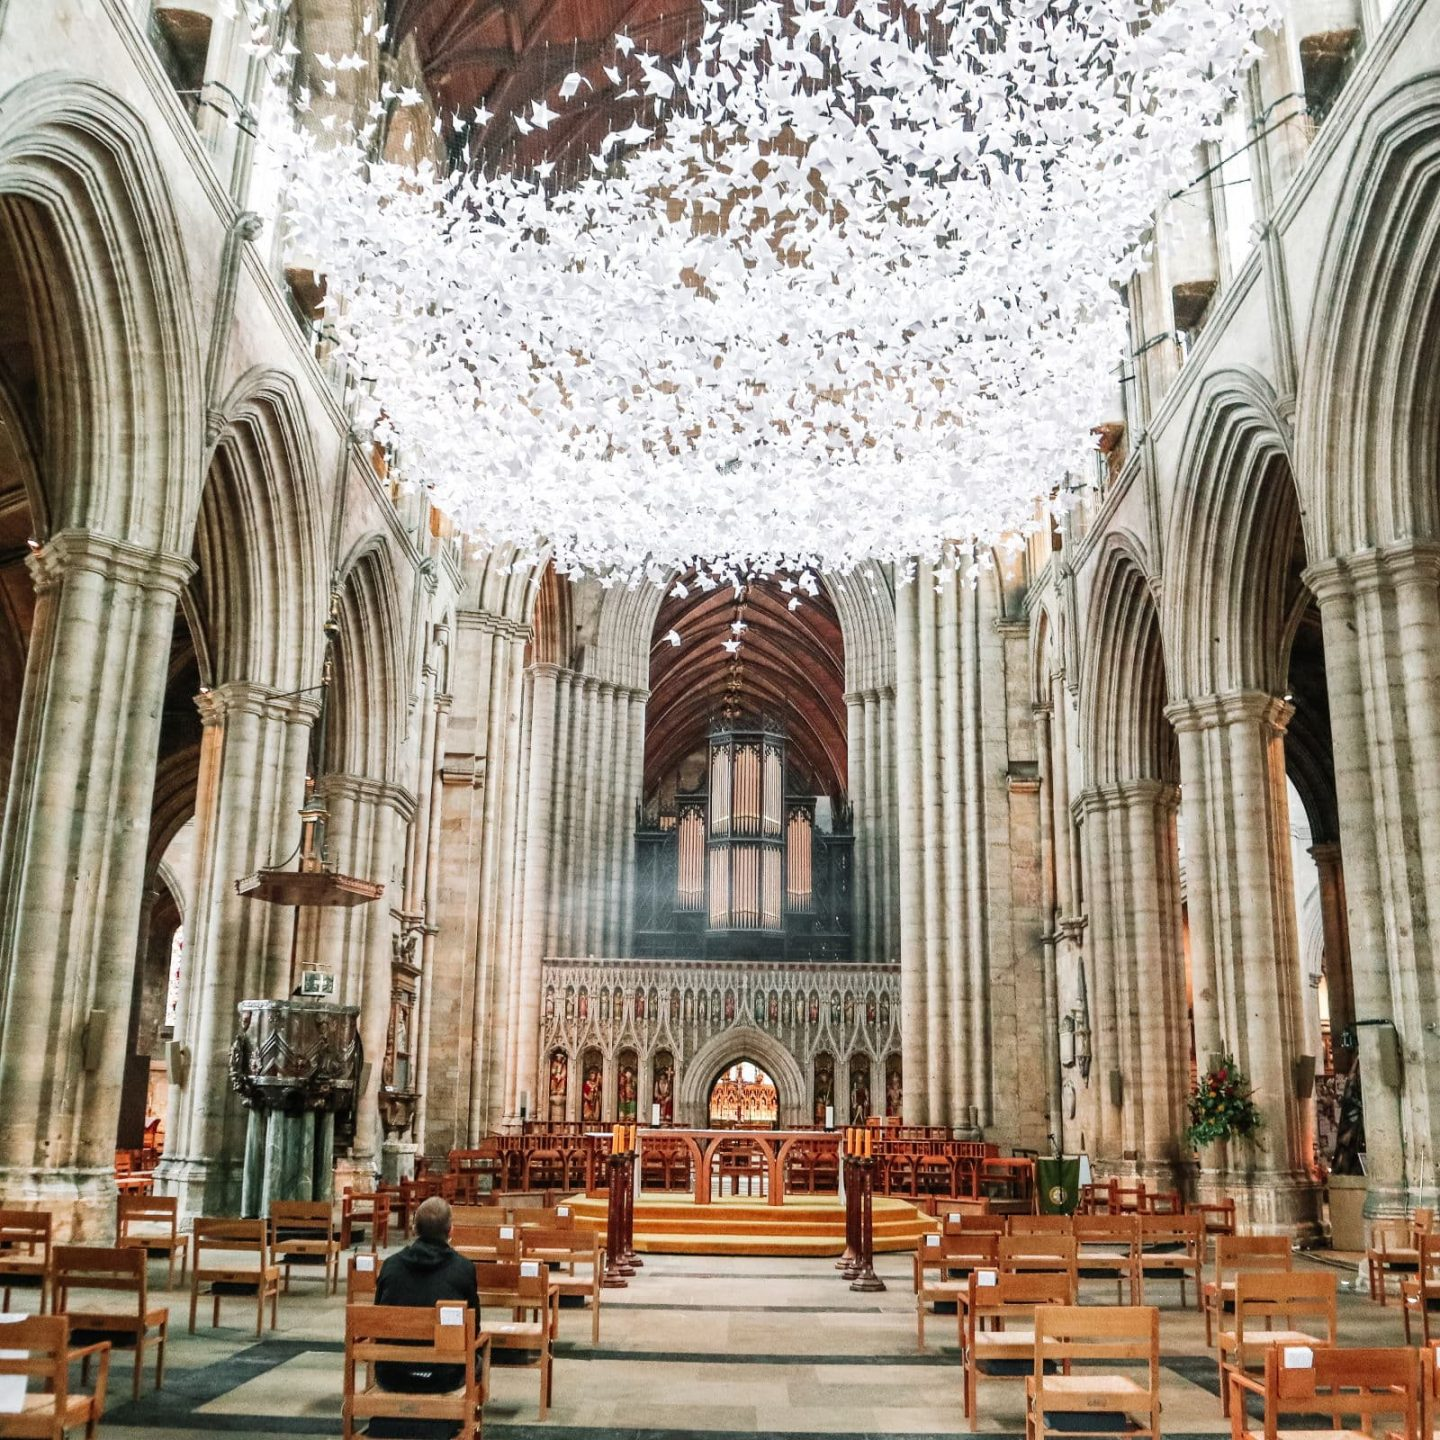 The wing and a prayer exhibitions of paper angels at Ripon cathedral